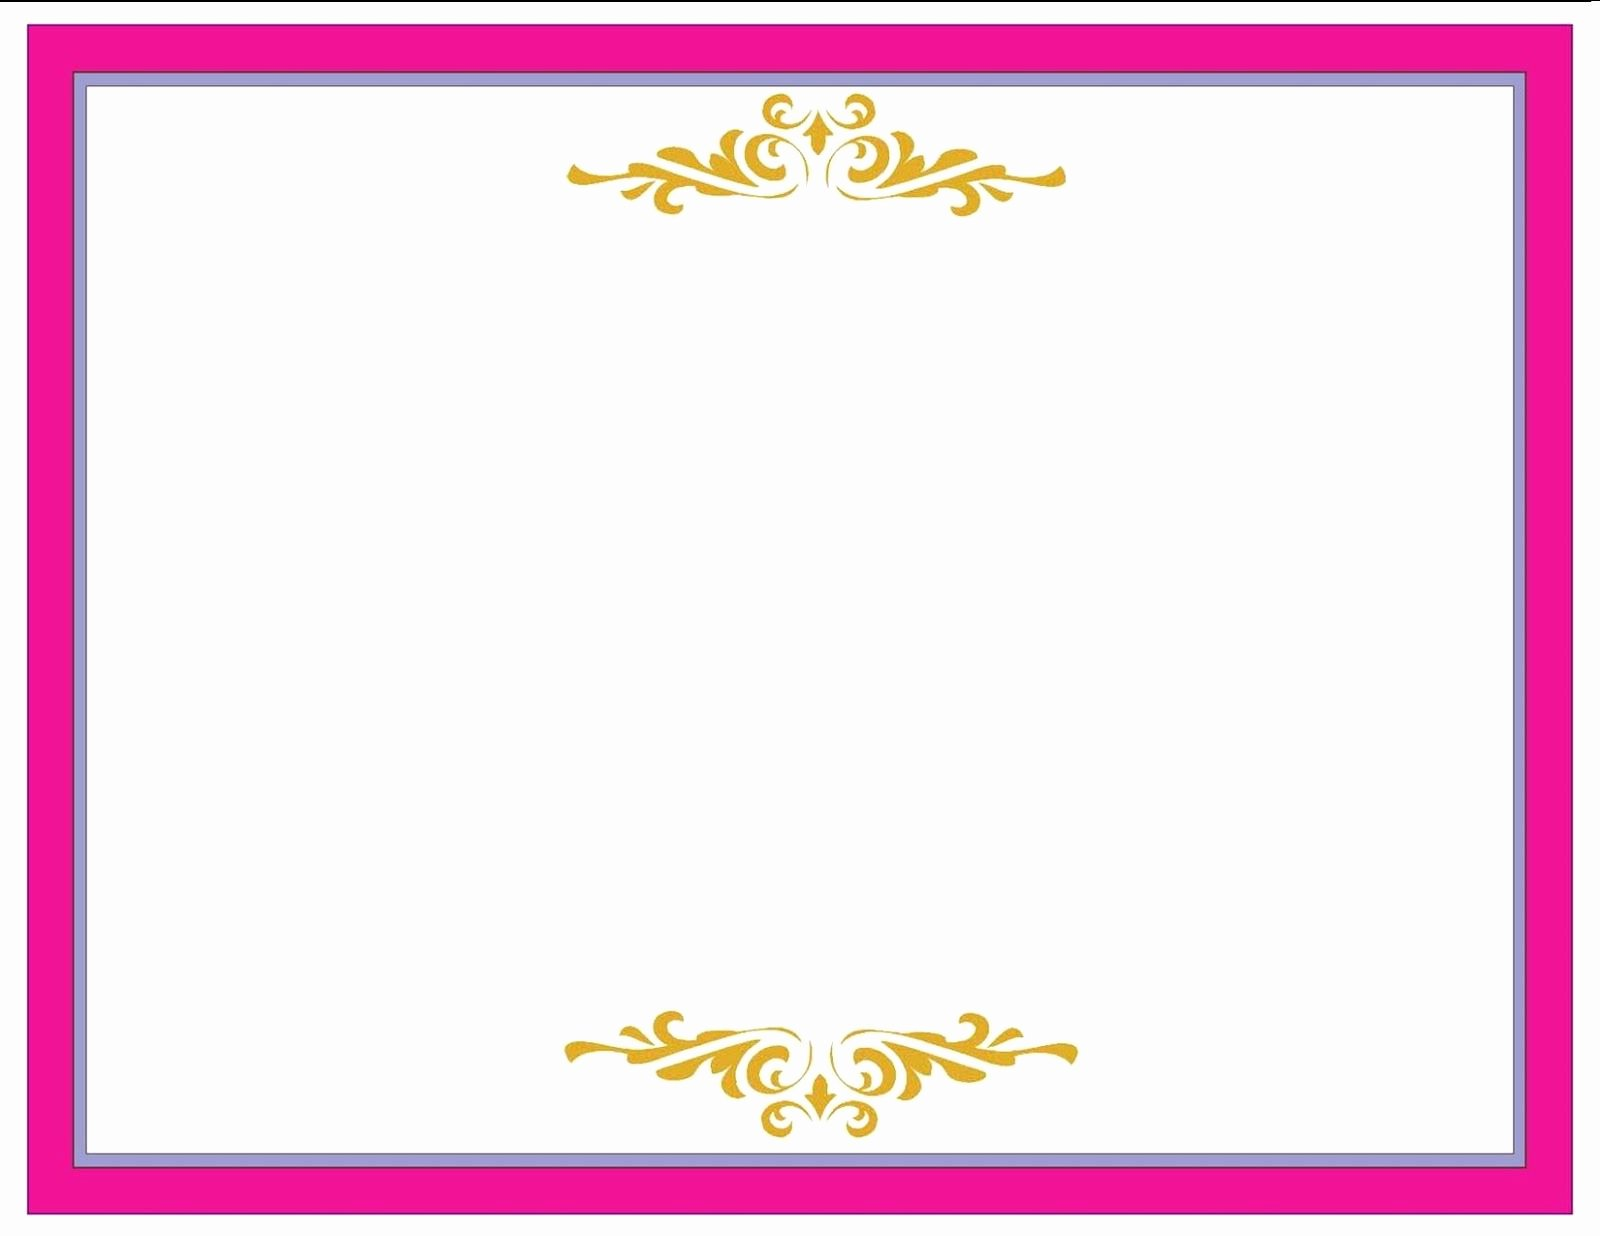 Free Gold Border Templates Elegant for Pink Borders and Frames